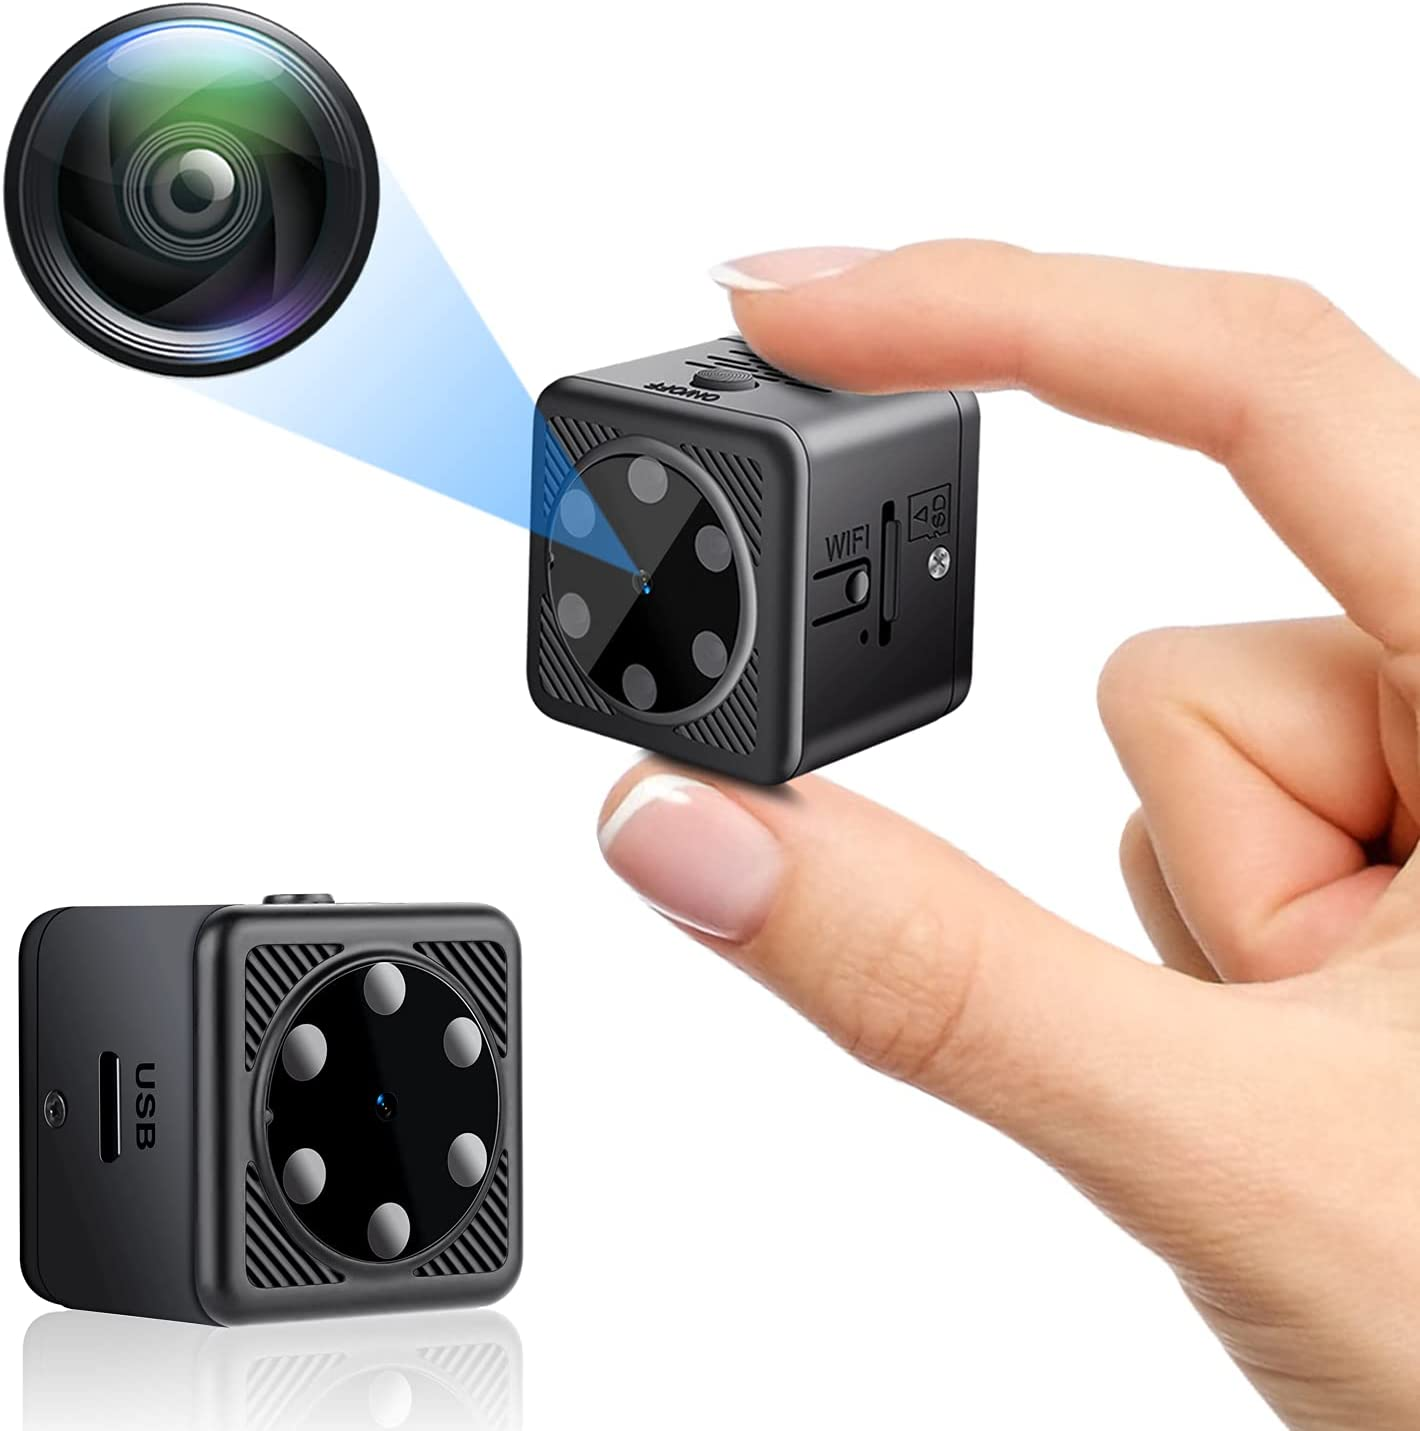 Mini Spy Cameras Hidden, Anviker P2P Camera 1080P HD Small Portable Wireless Covert Tiny Nanny Cam(10 Meters), Home Security Surveillance Camera with Night Vision